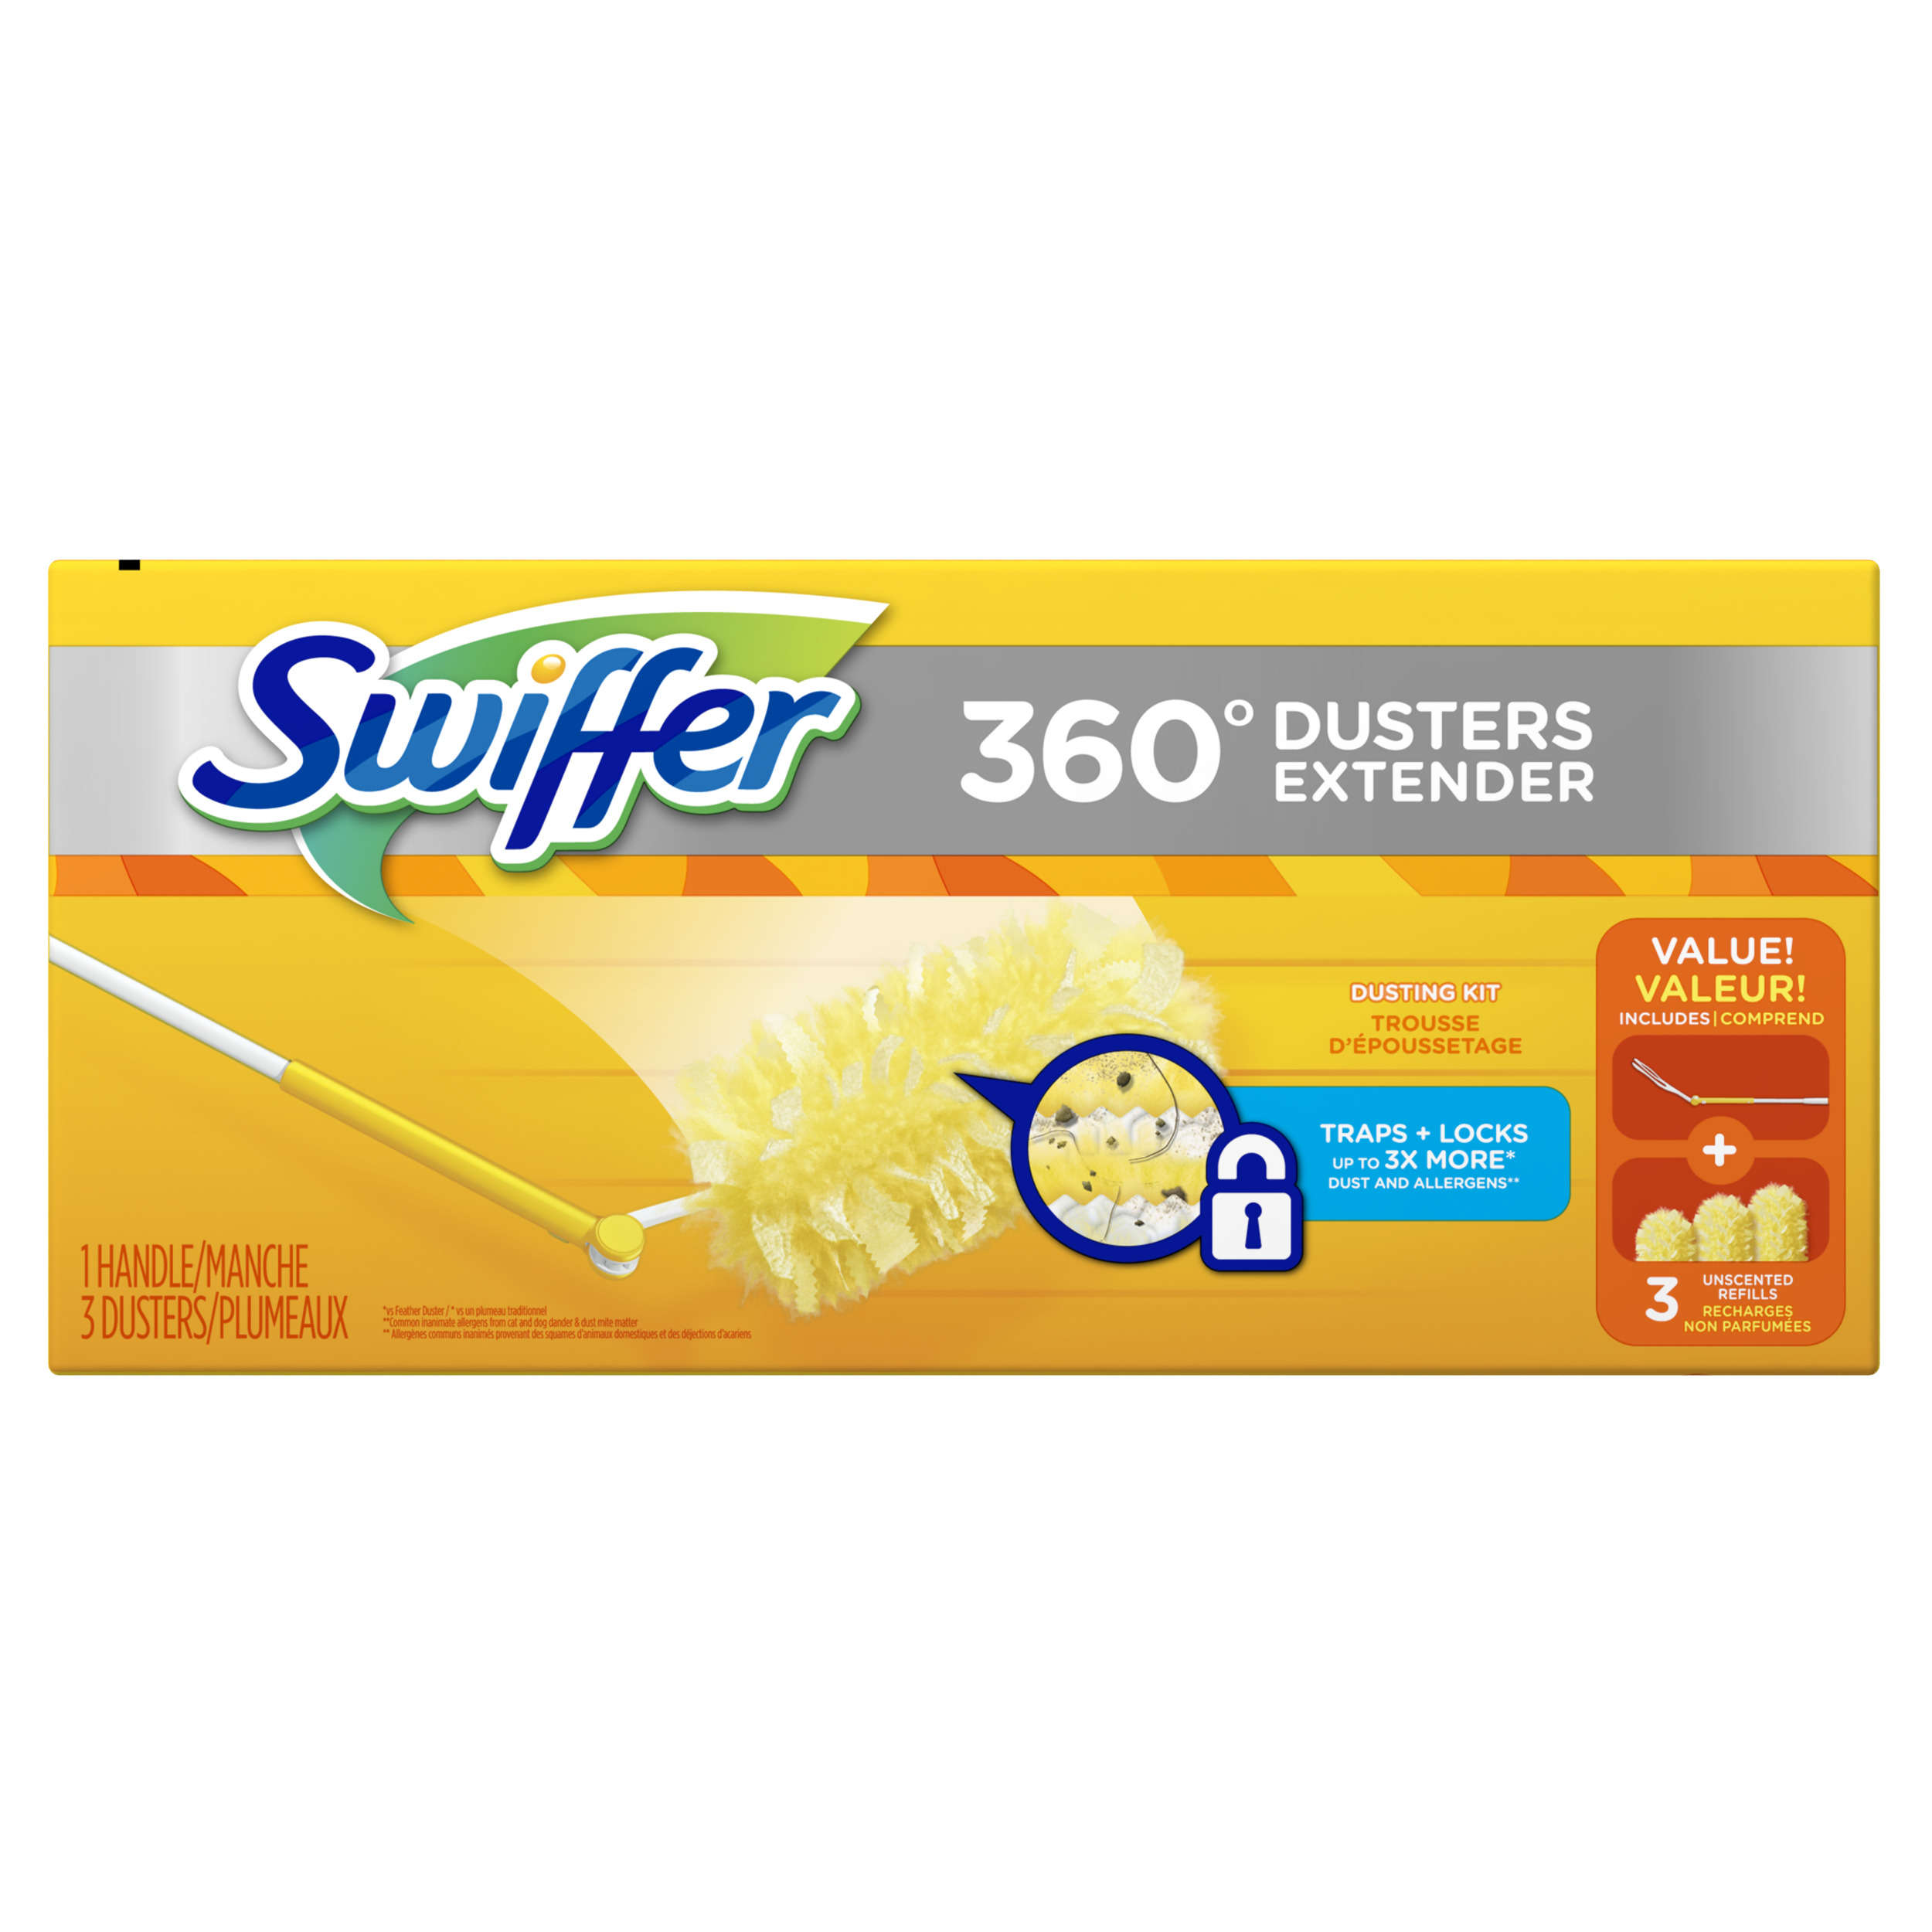 Swiffer 360 Dusters Extender Dusting Kit (1 Handle, 3 Dusters)